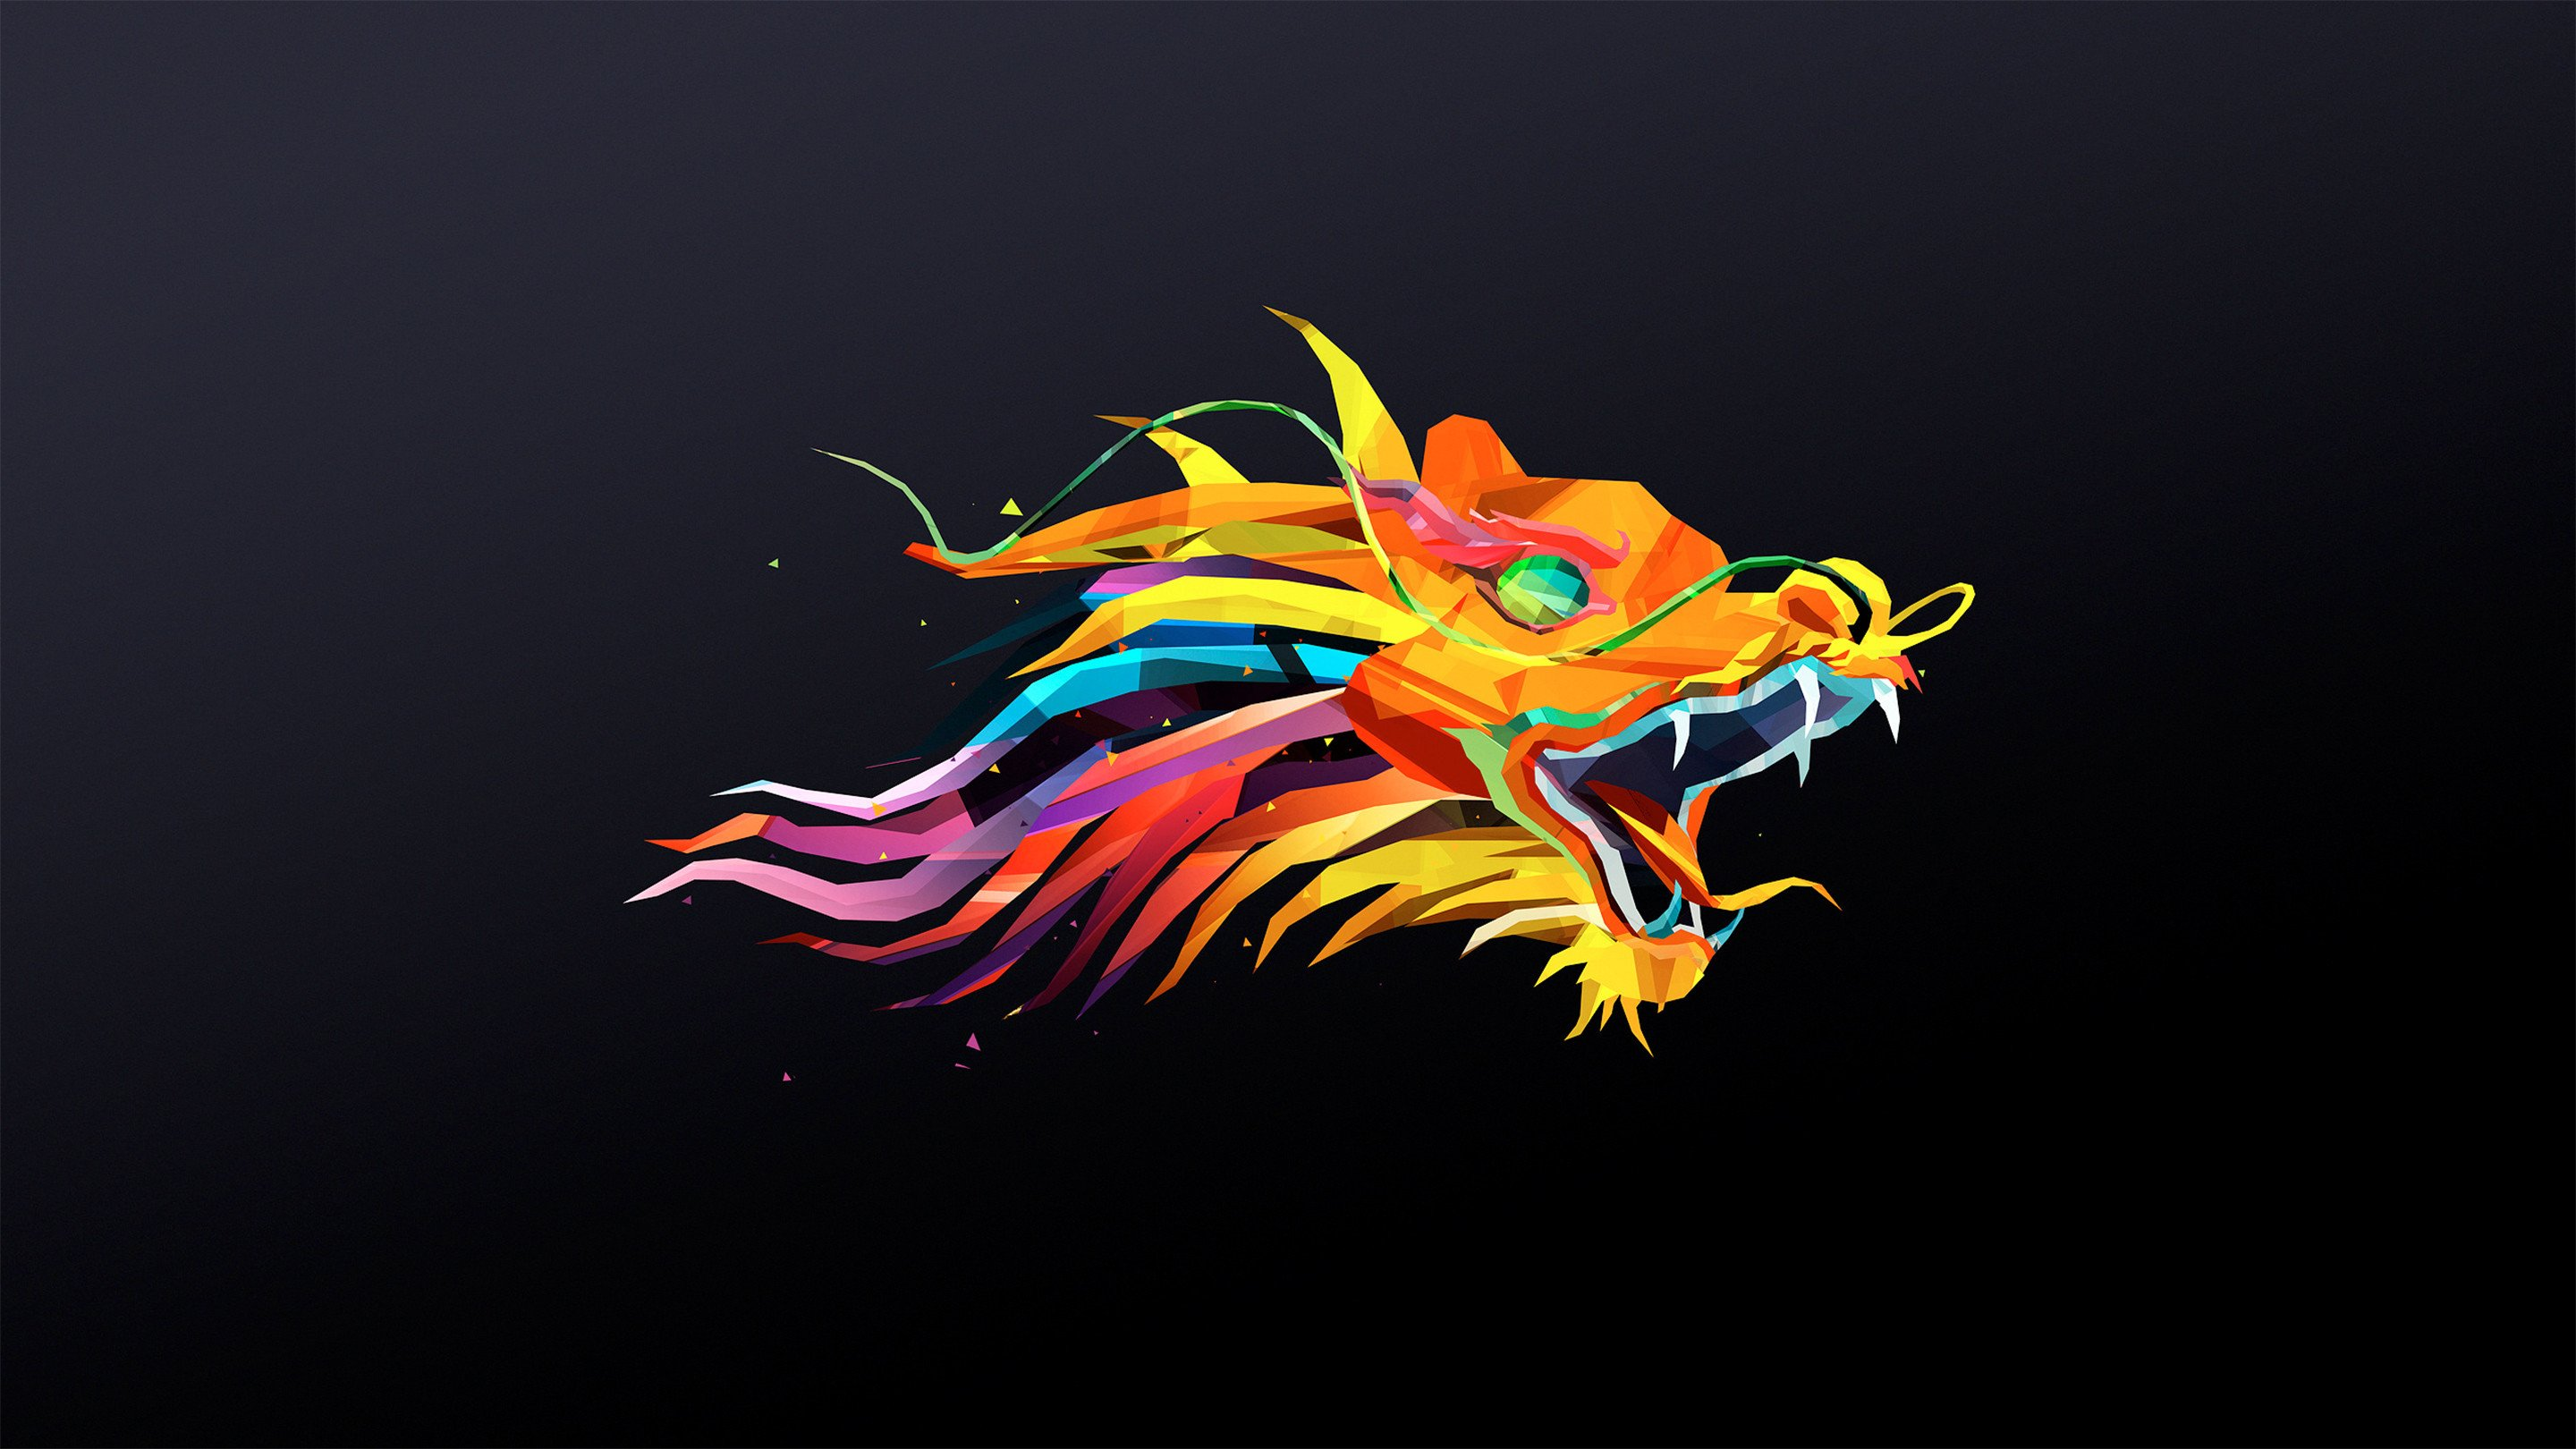 Dragon 4k Wallpapers For Your Desktop Or Mobile Screen Free